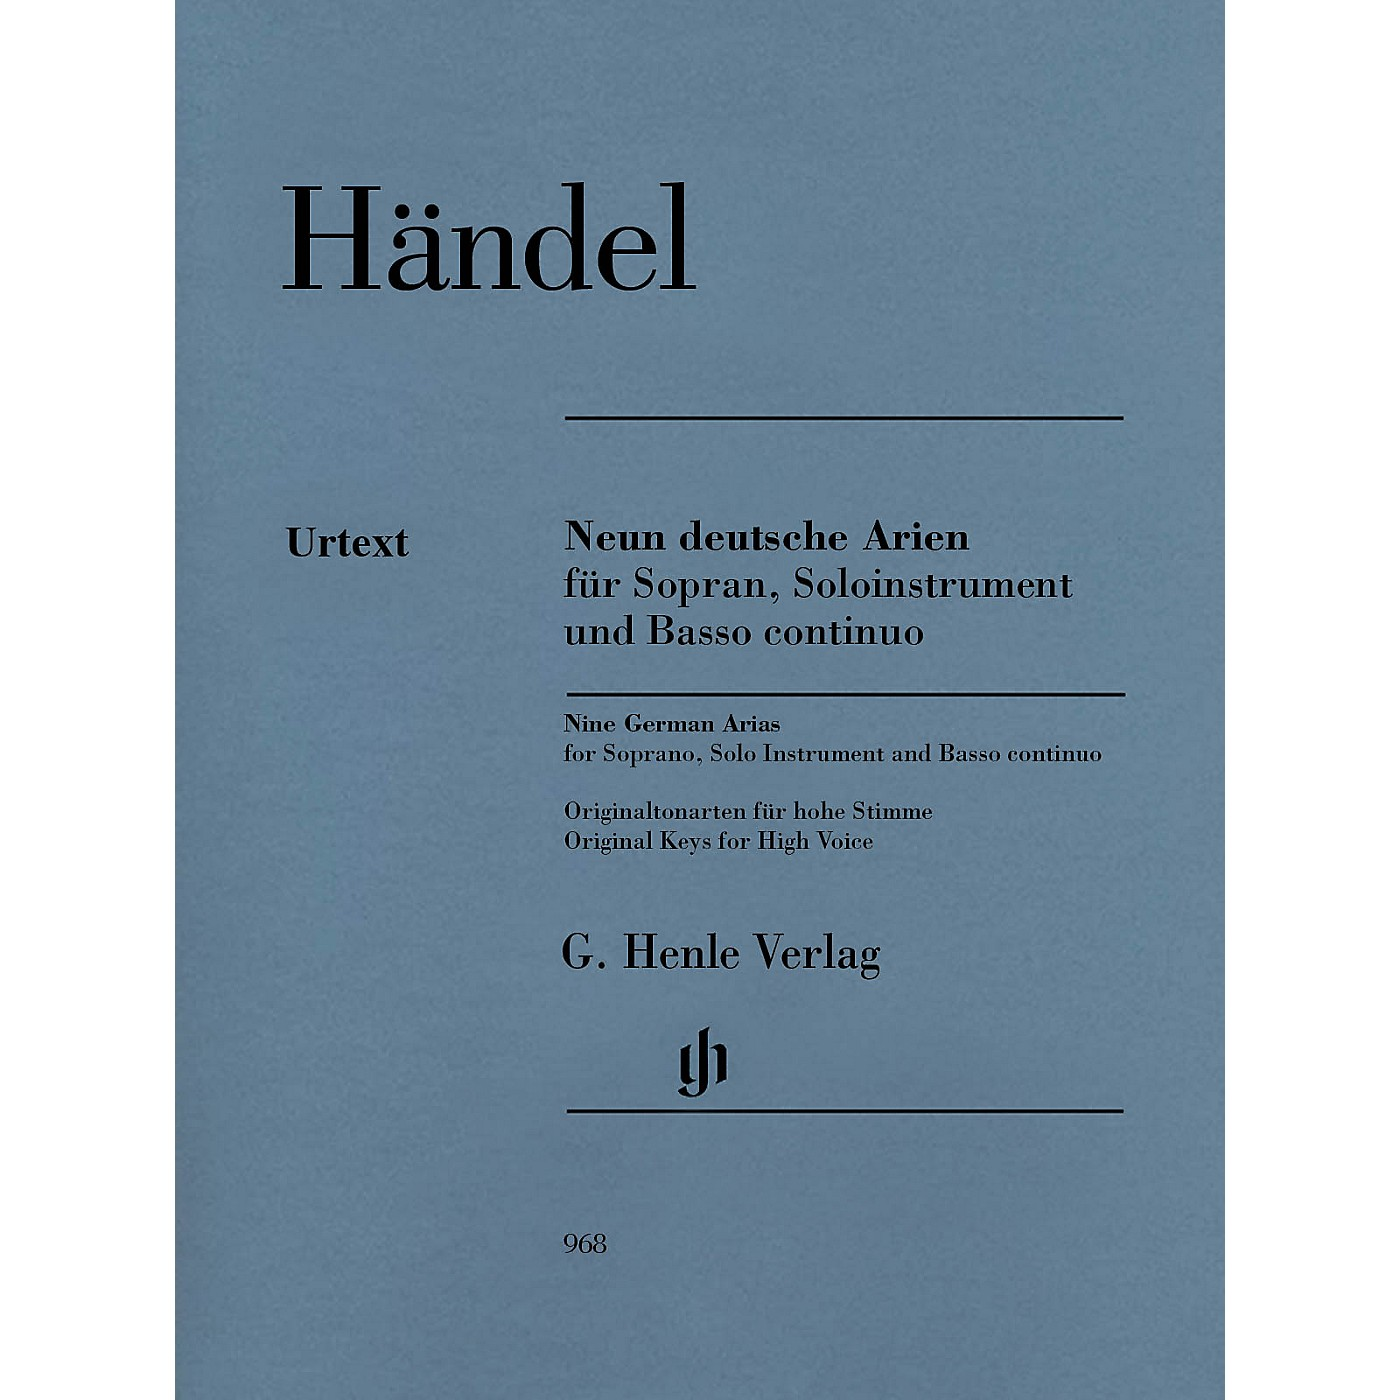 G. Henle Verlag 9 German Arias for Soprano, Solo Instrument and Basso Continuo Henle Music by Händel thumbnail